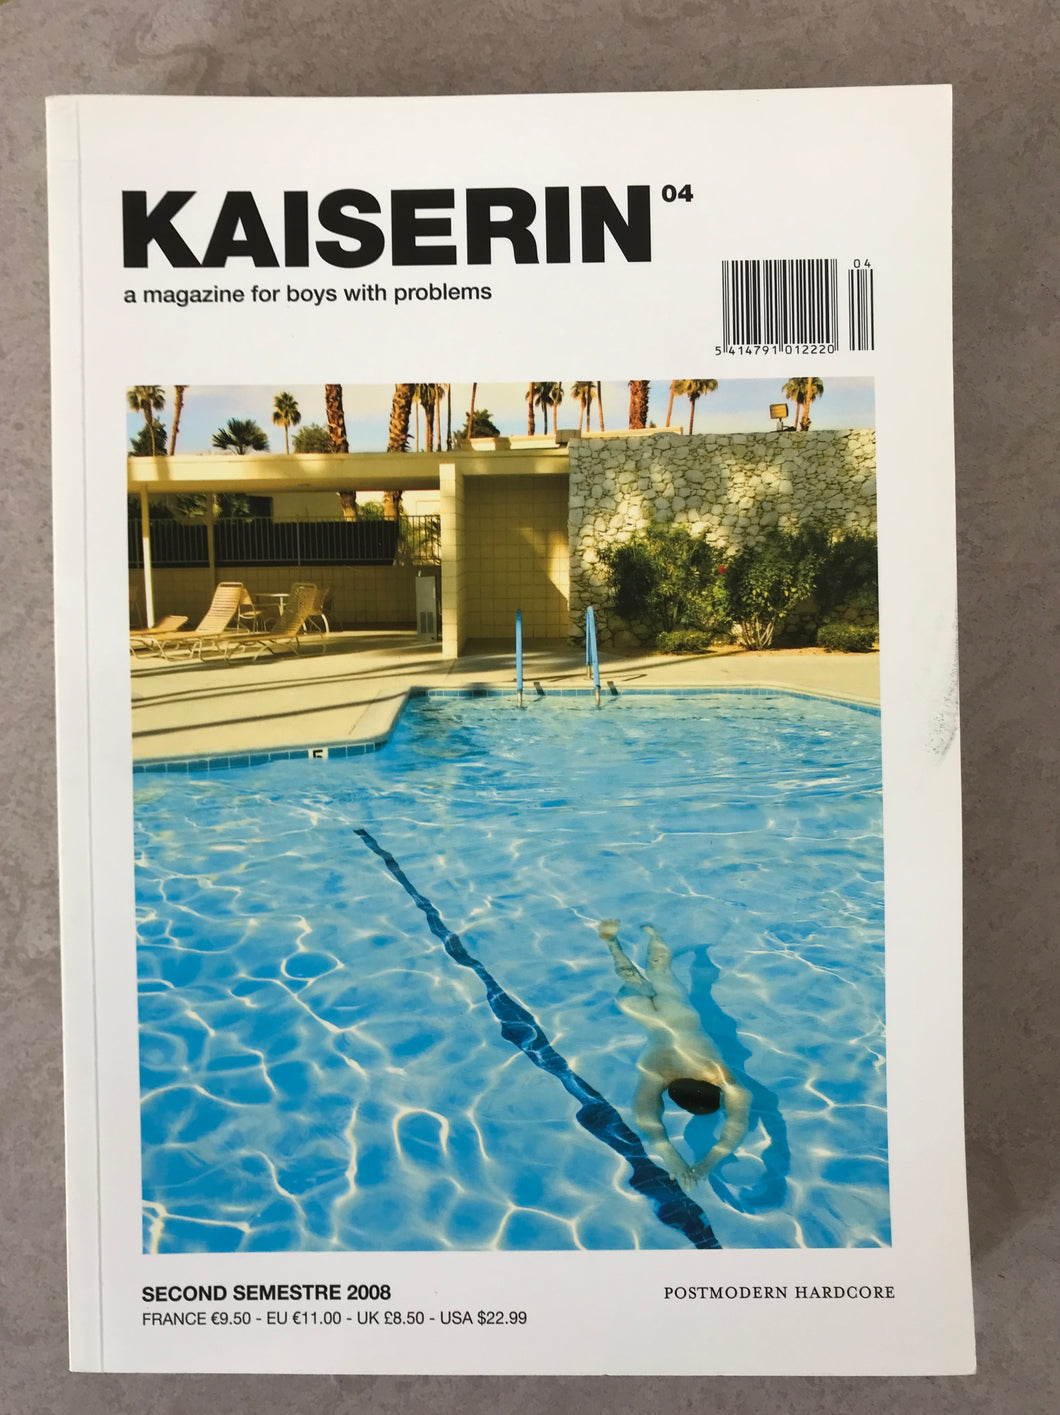 KAISERIN ISSUE NO. 04